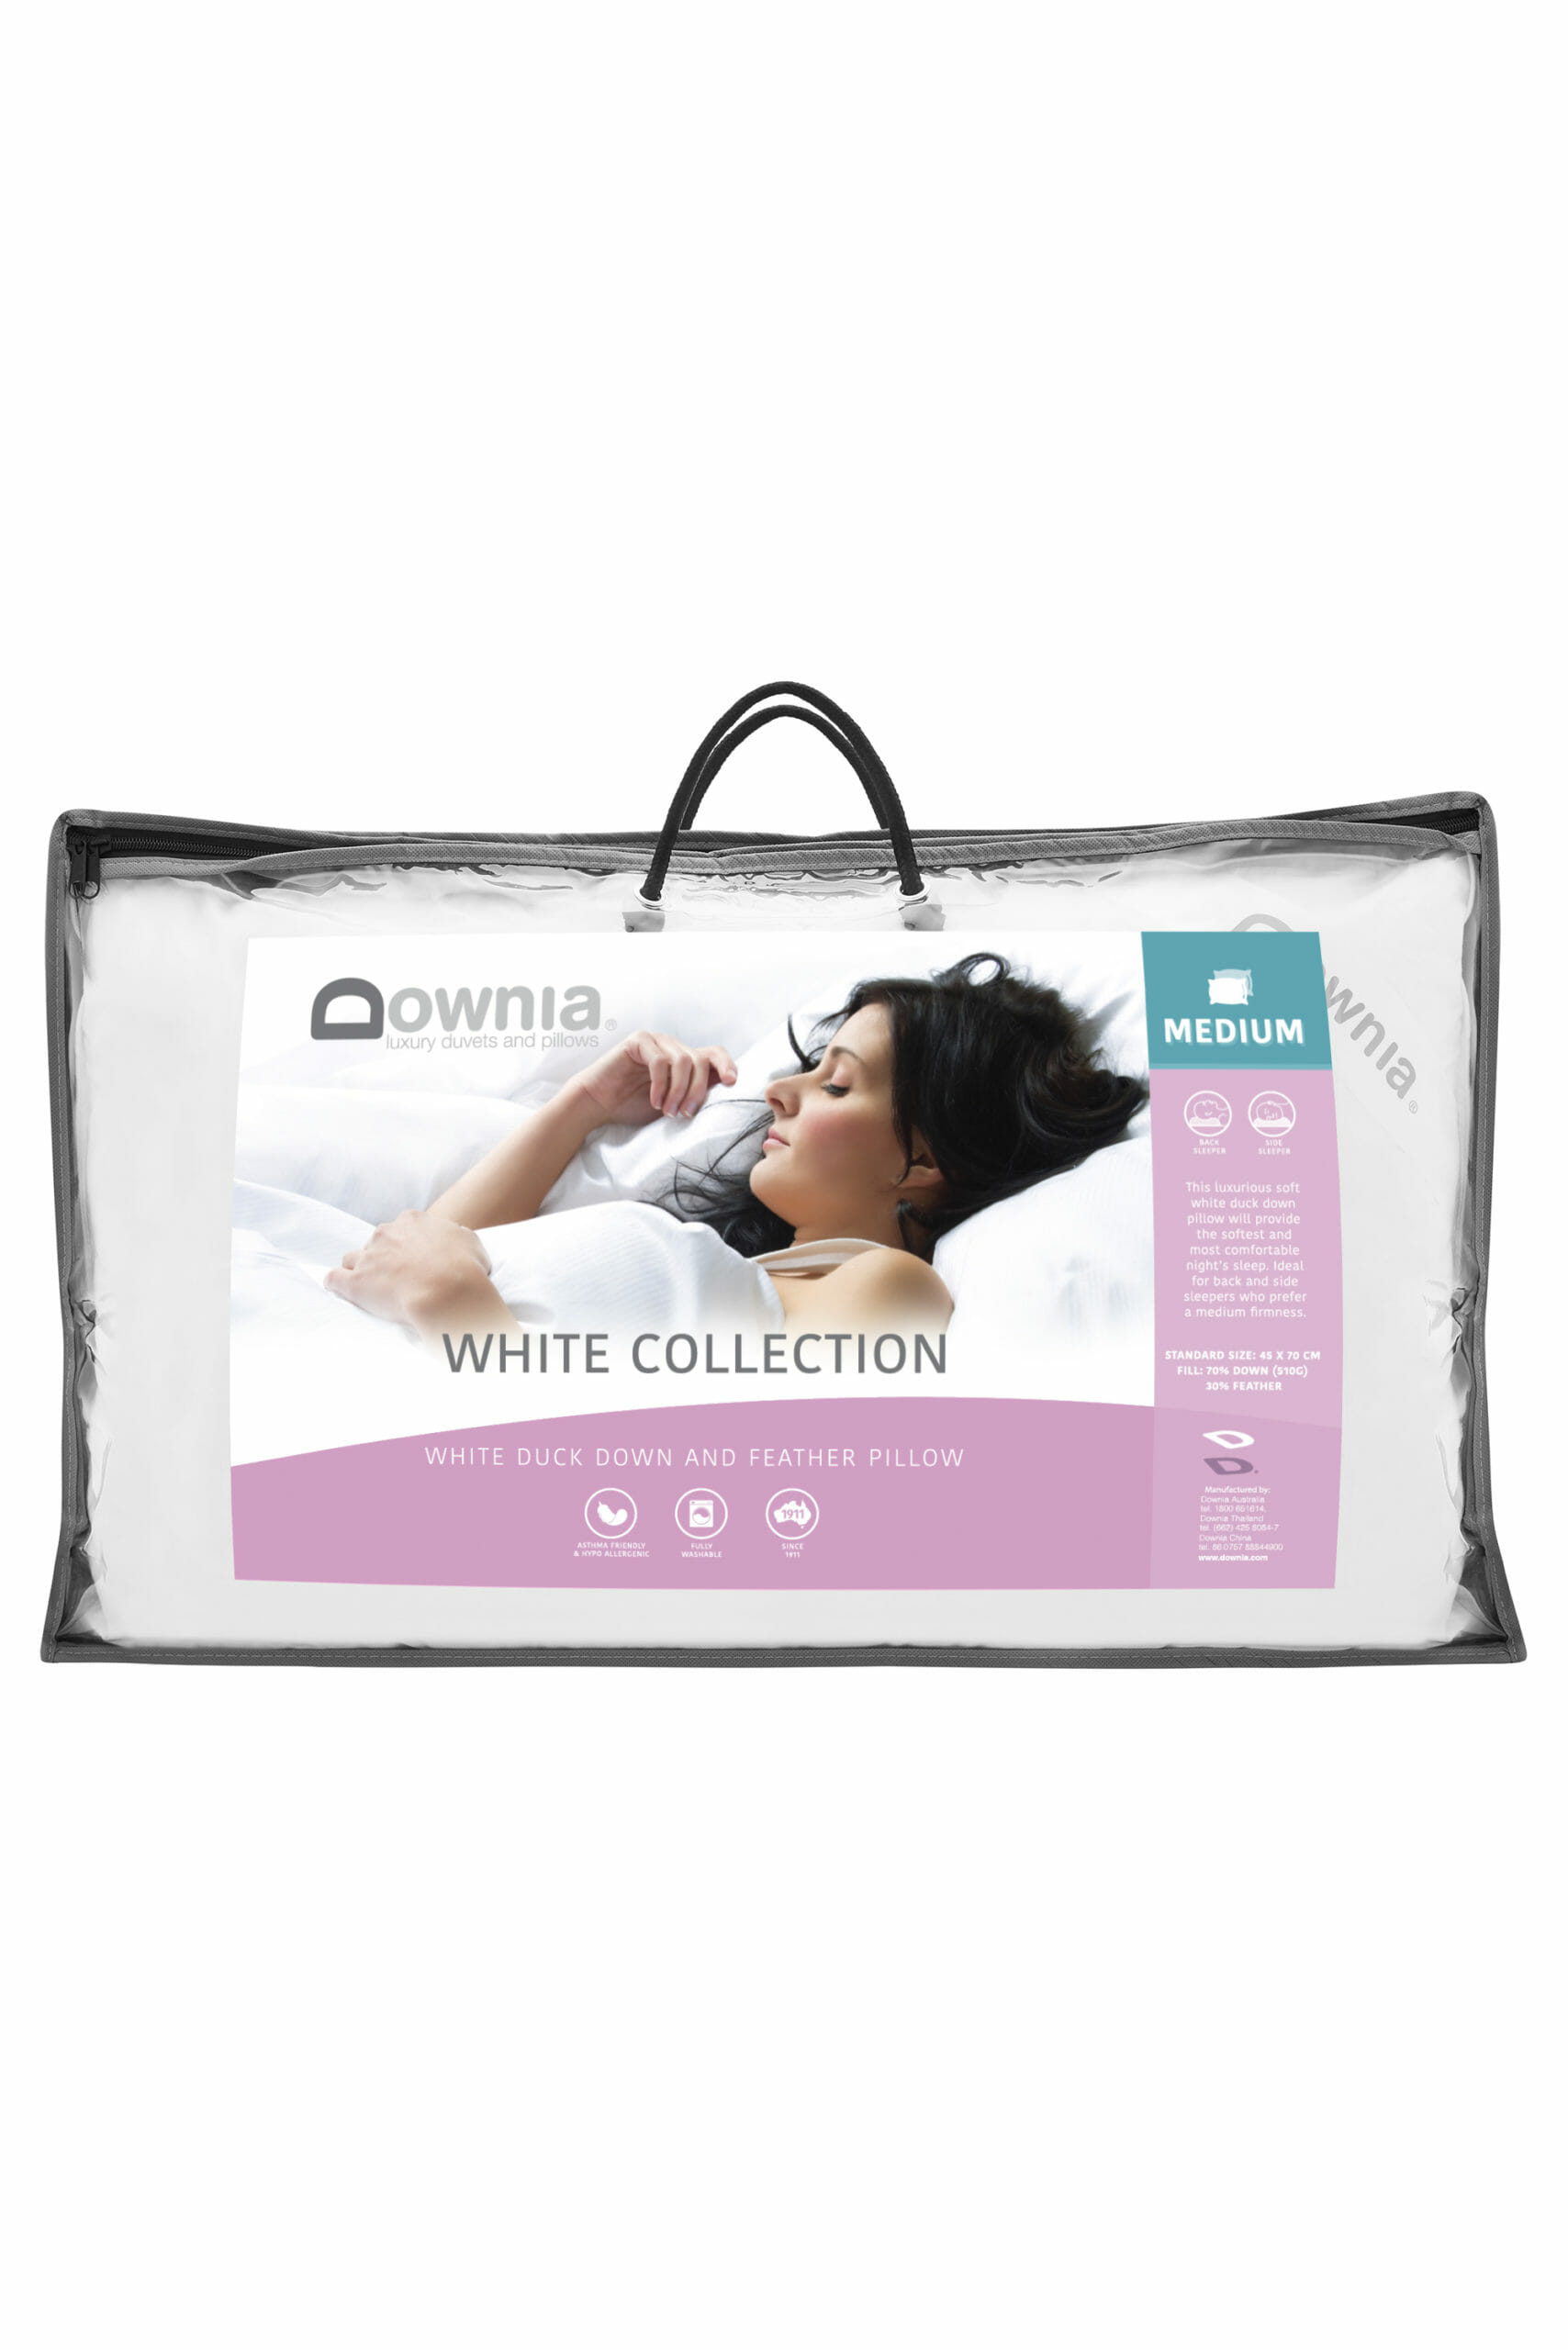 Downia WHITE COLLECTION White Duck Down Standard Size Pillow